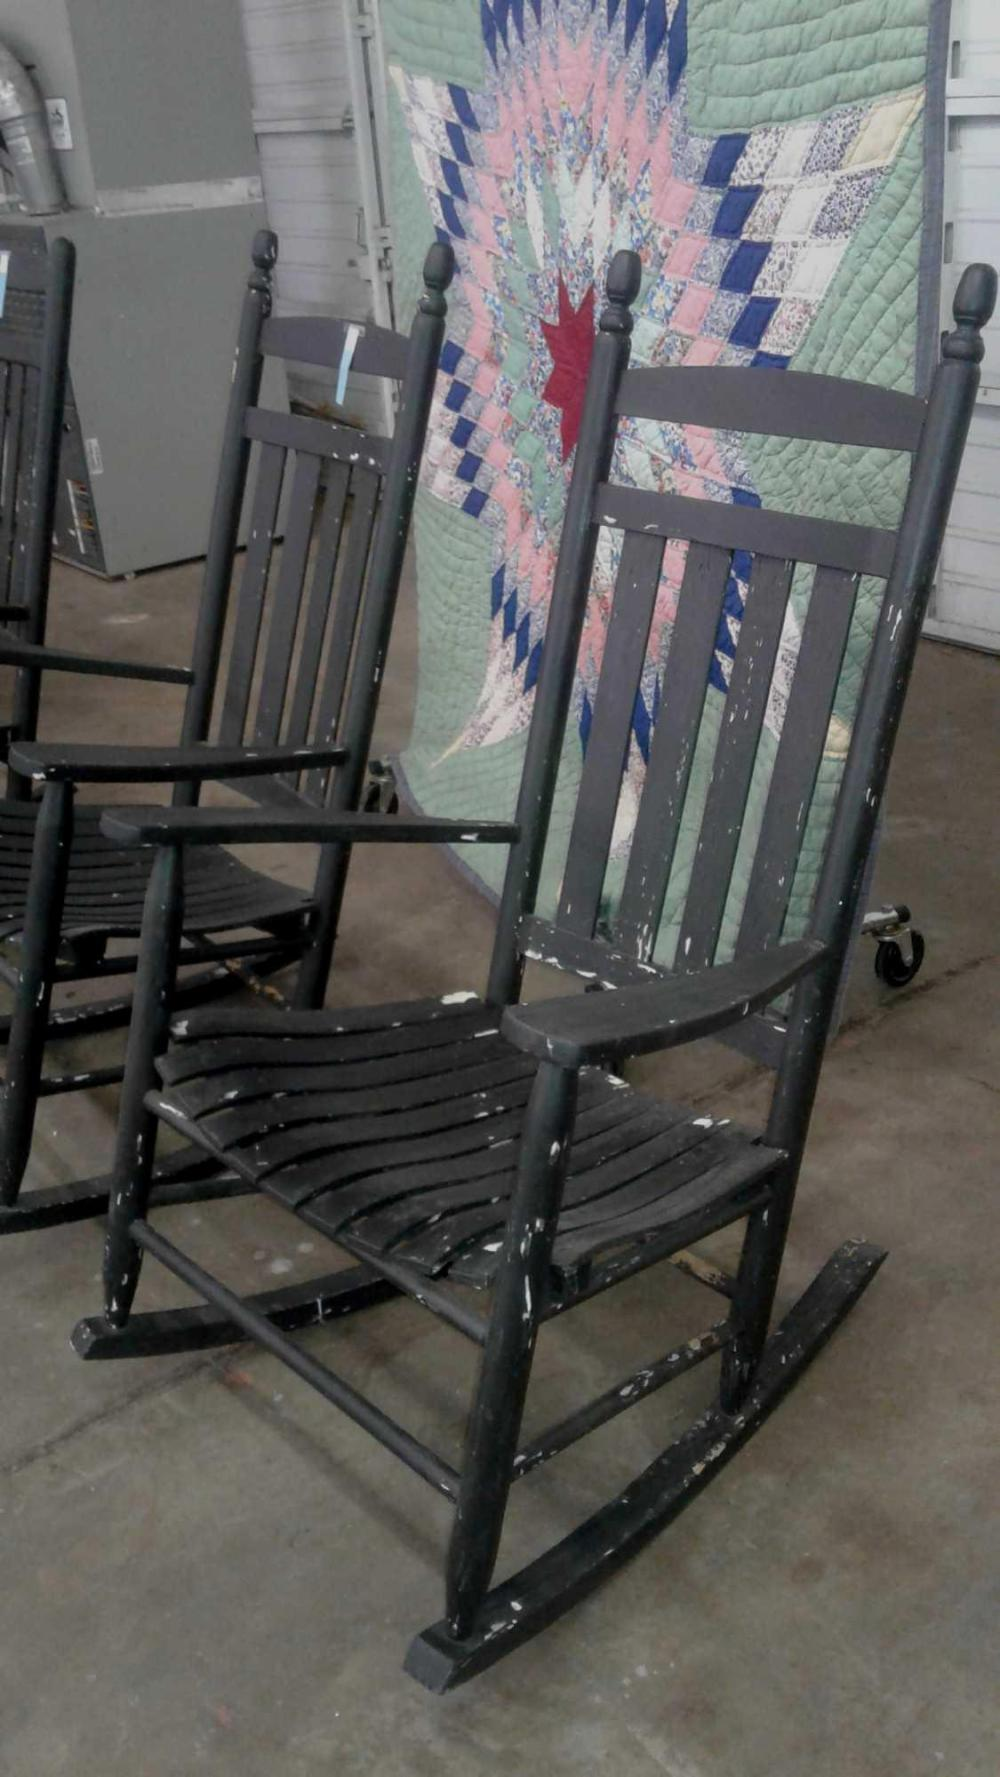 BLACK PAINTED HIGH BACK WOODEN PORCH ROCKERS - 2 ITEMS